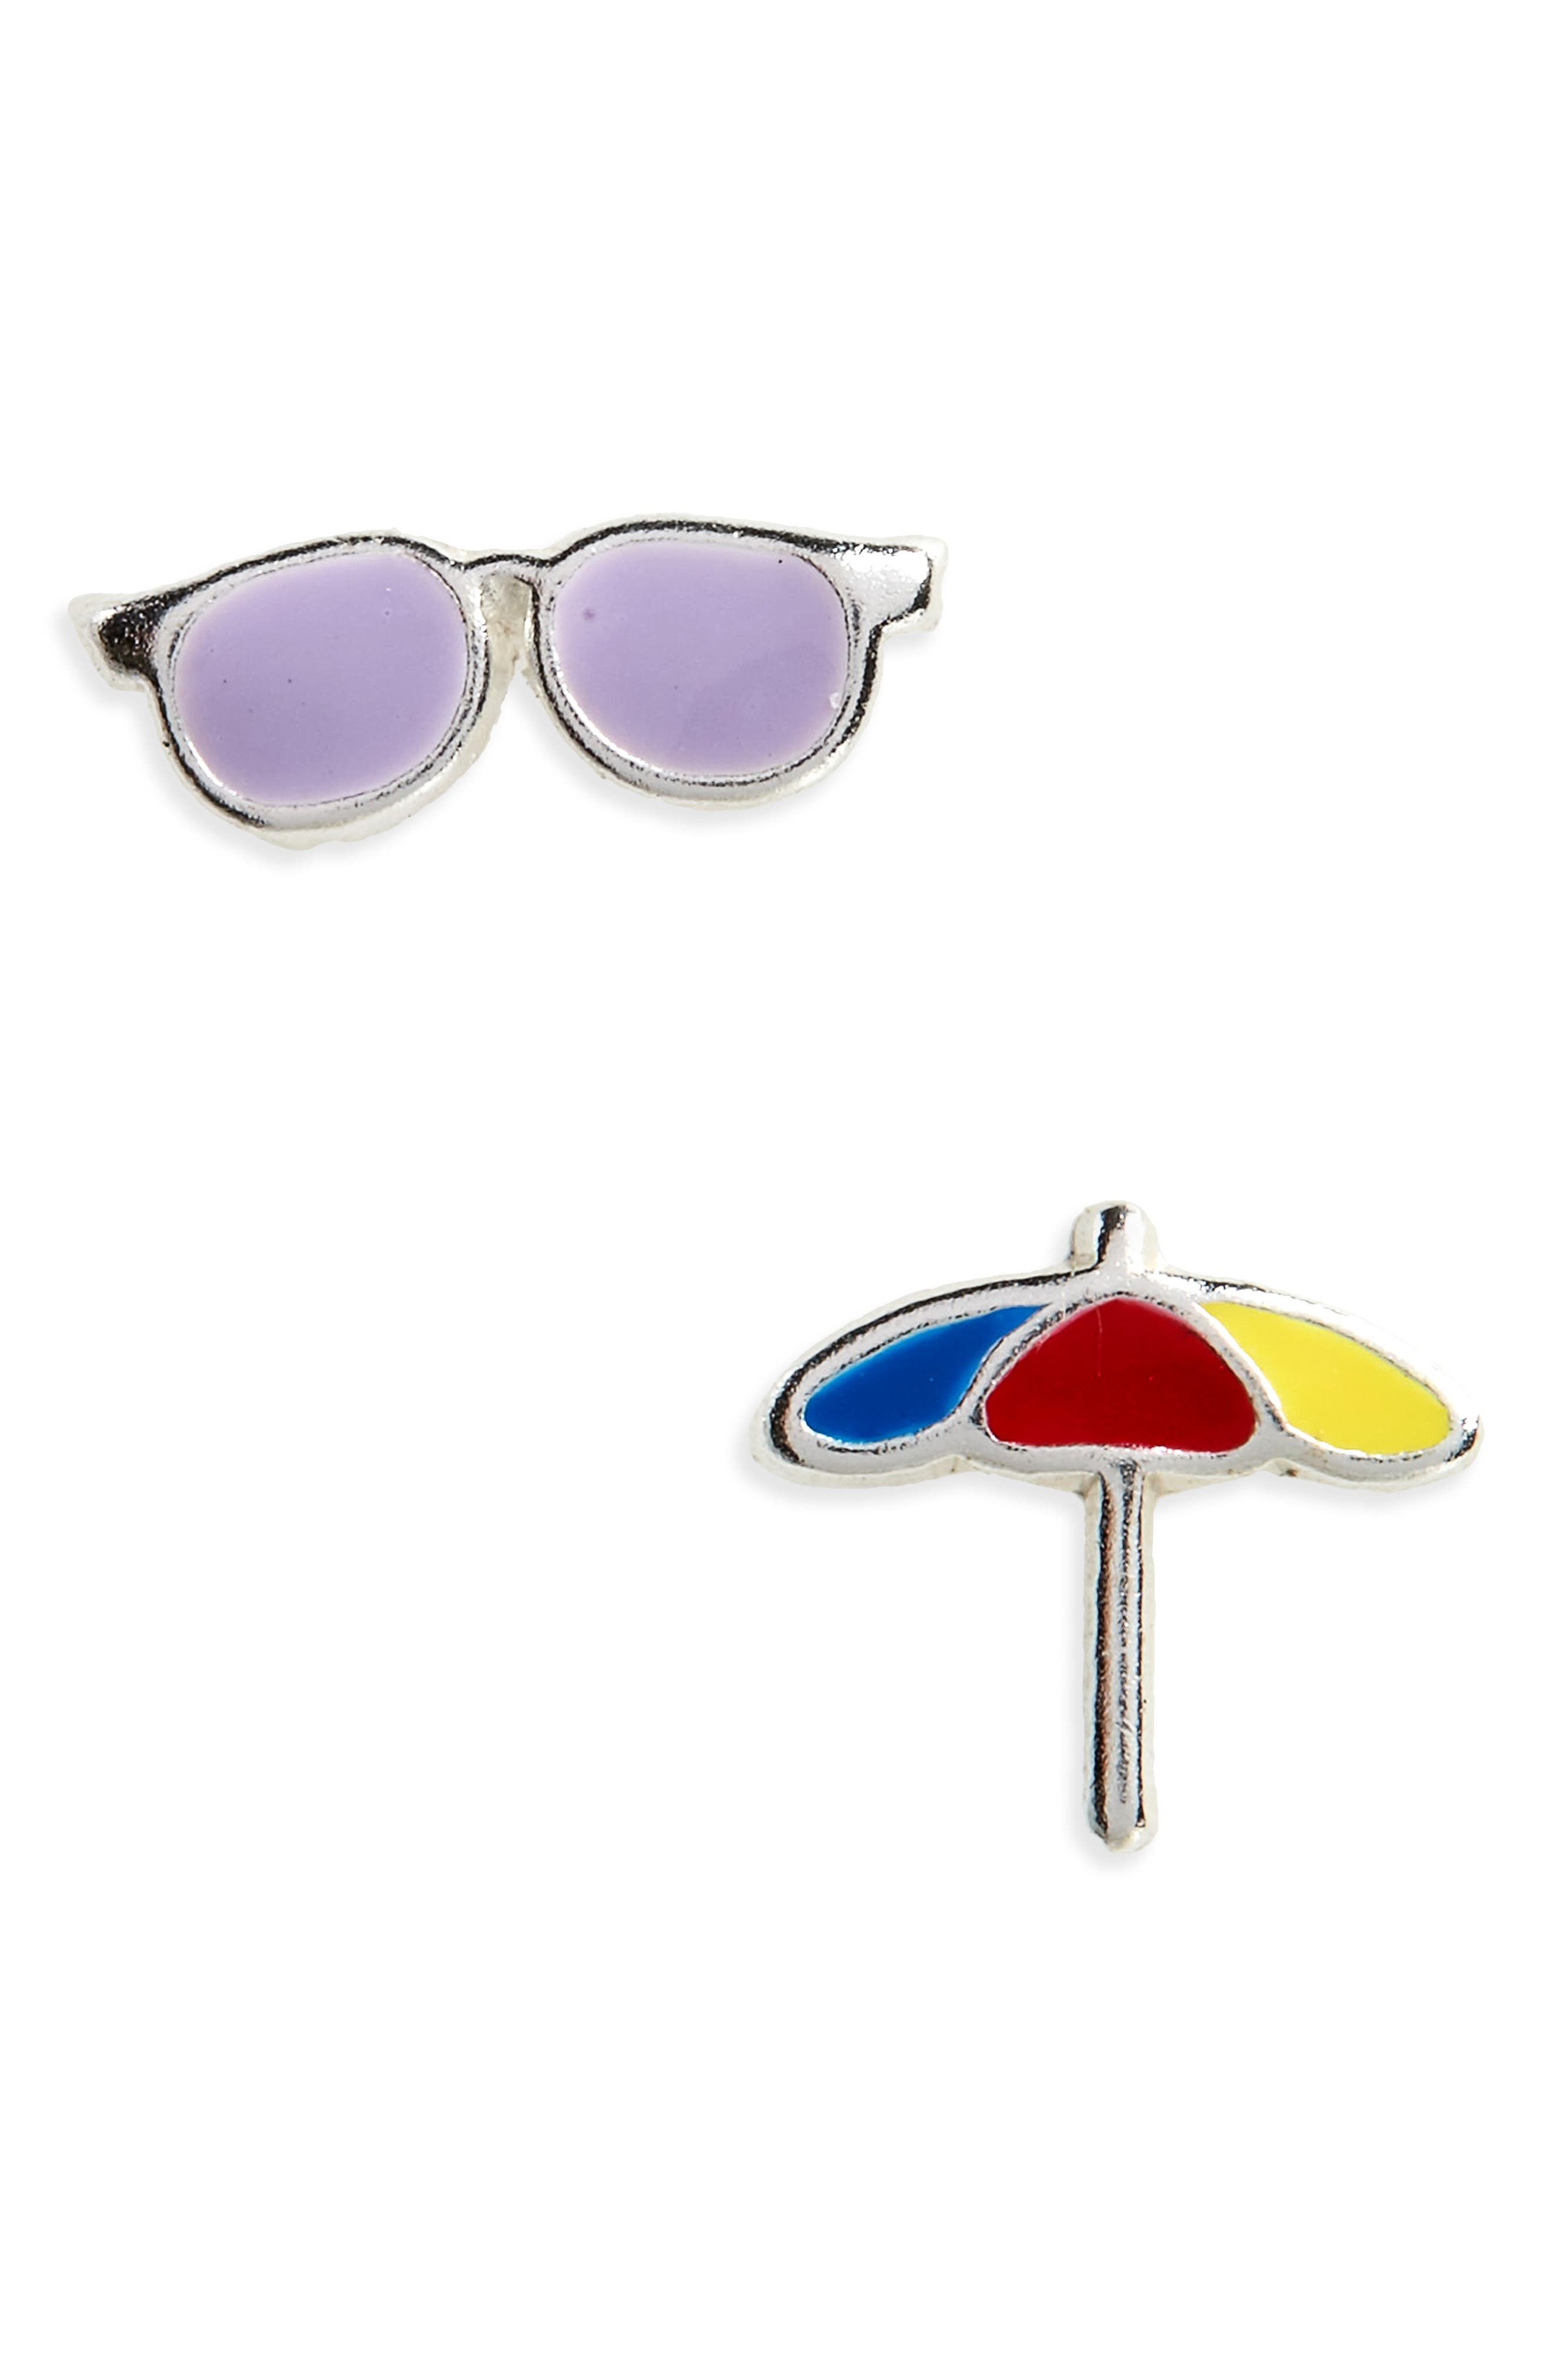 Sunglasses & Beach Umbrella Sterling Silver Stud Earrings,                         Main,                         color, Yellow/ Red/ Green